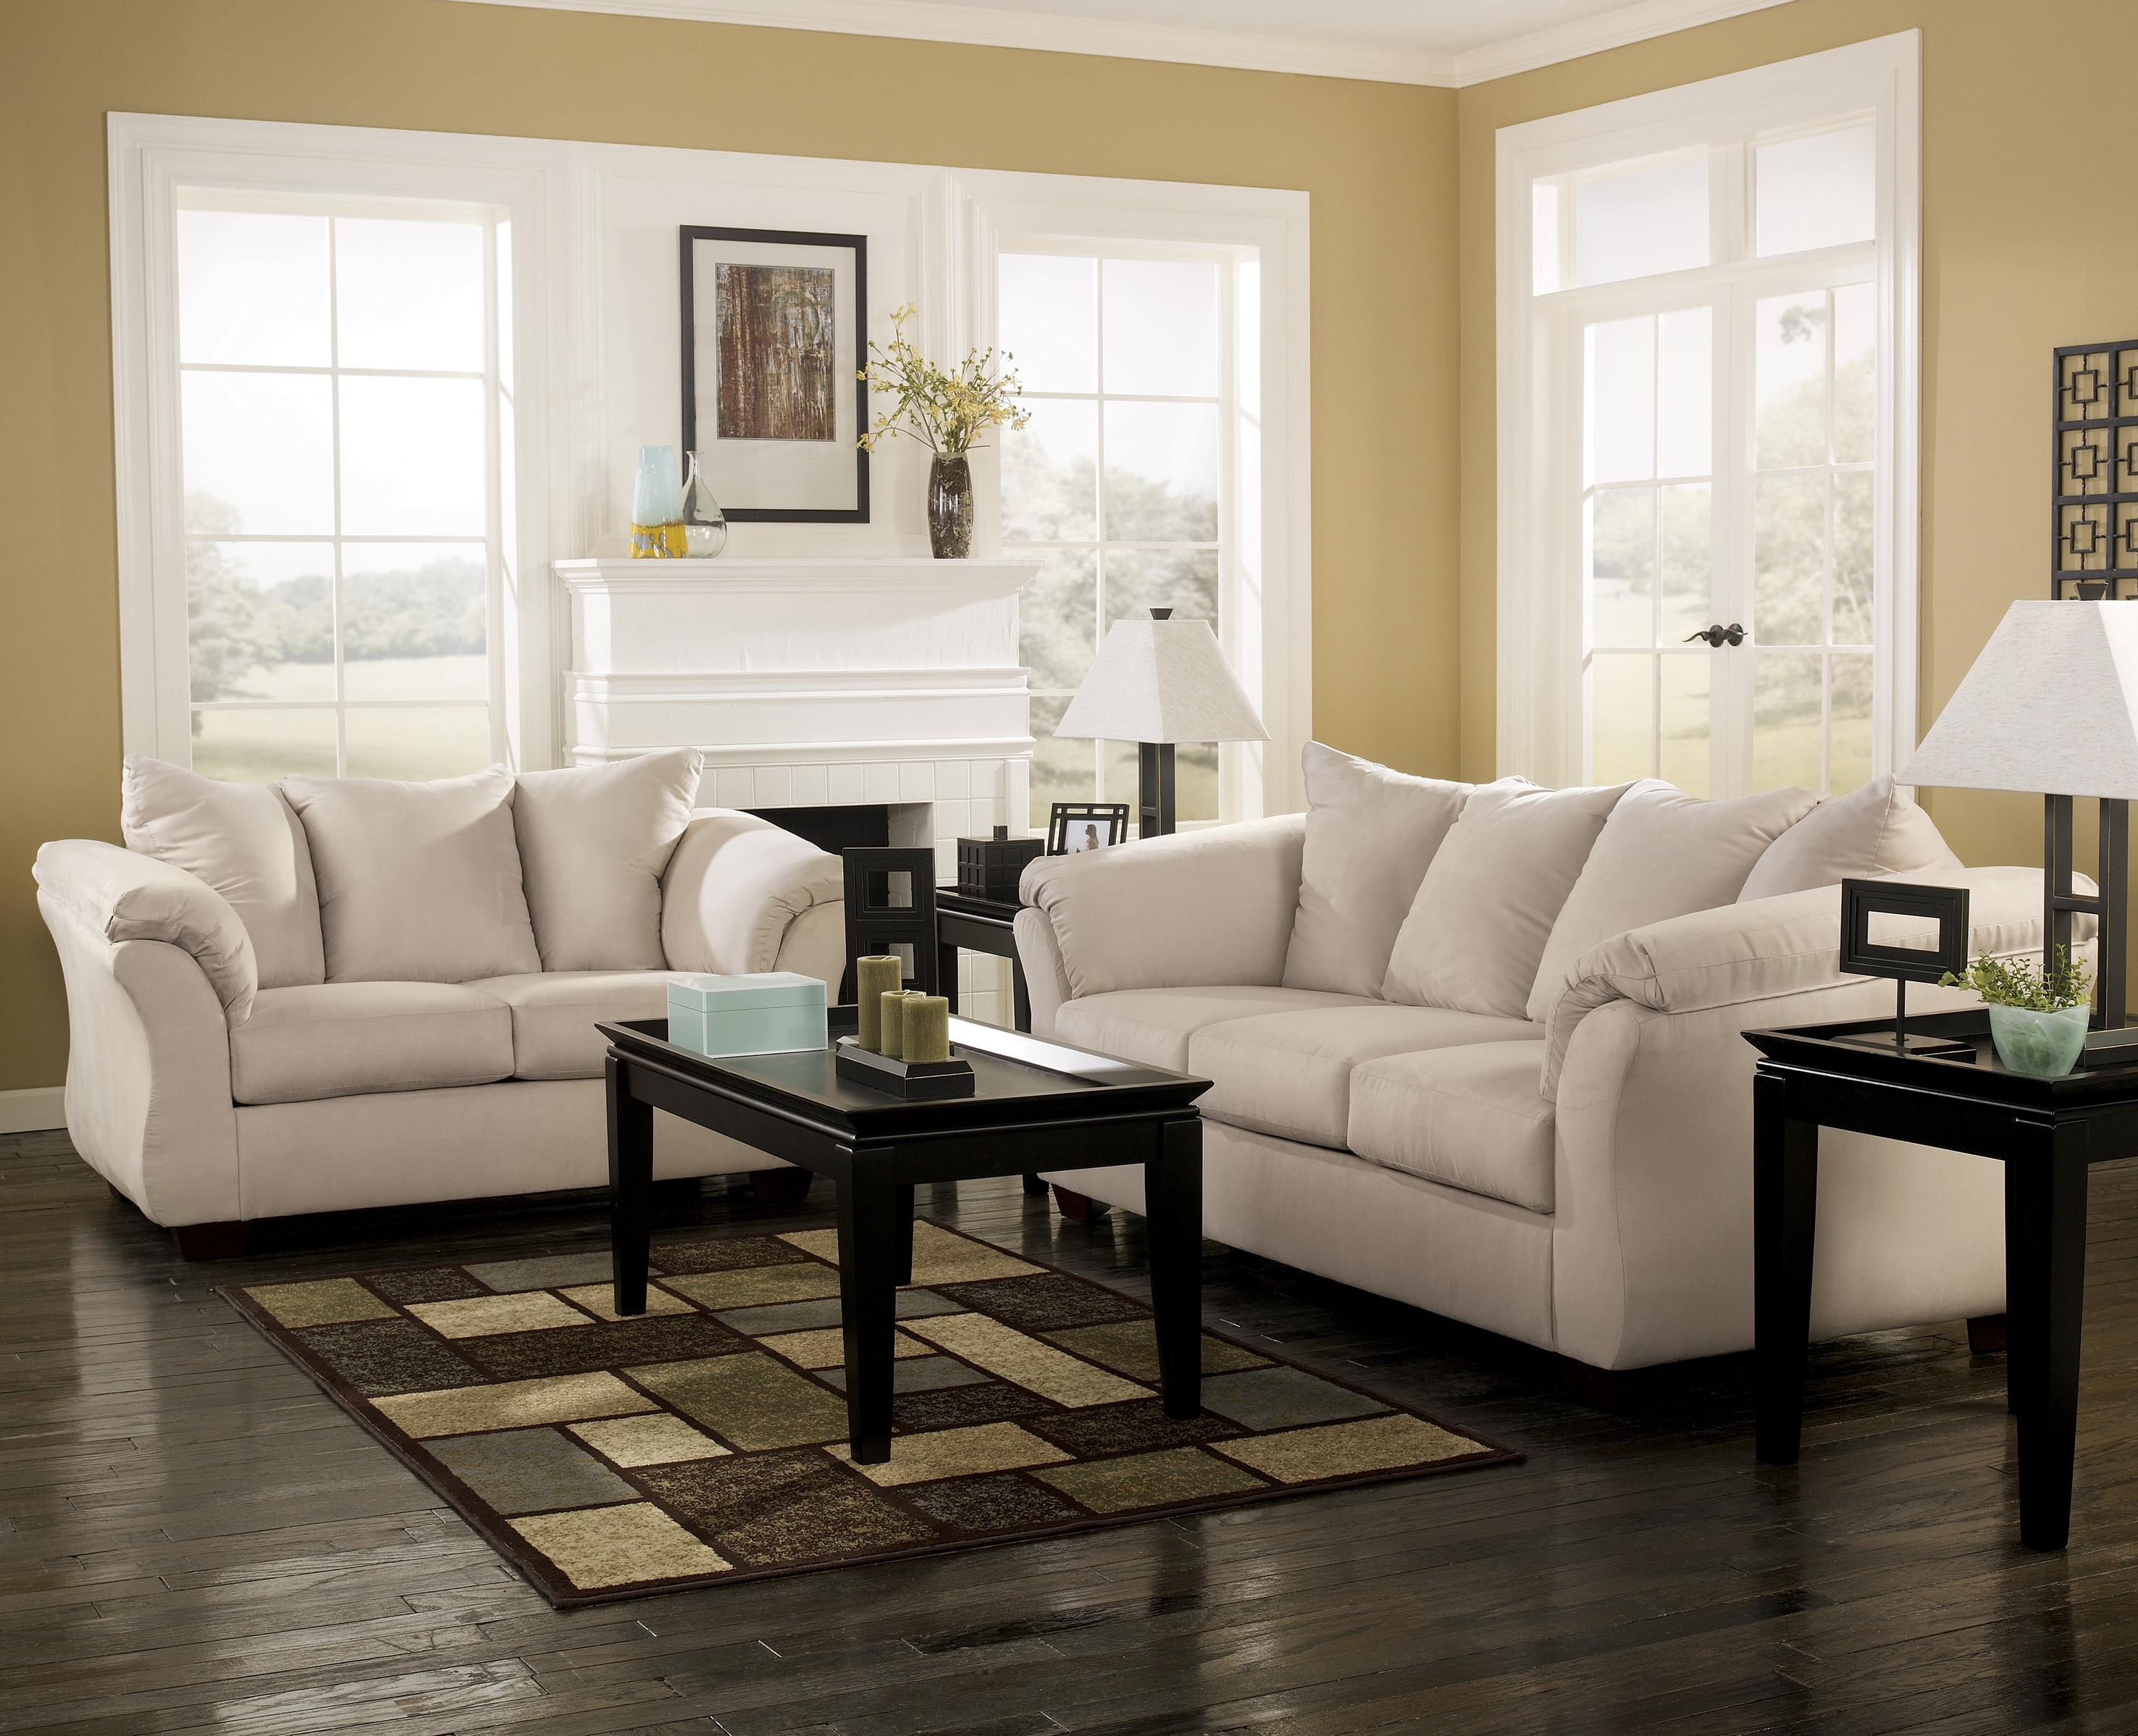 Signature Design By Ashley Darcy Stone 7500035 Contemporary Stationary Loveseat With Flared